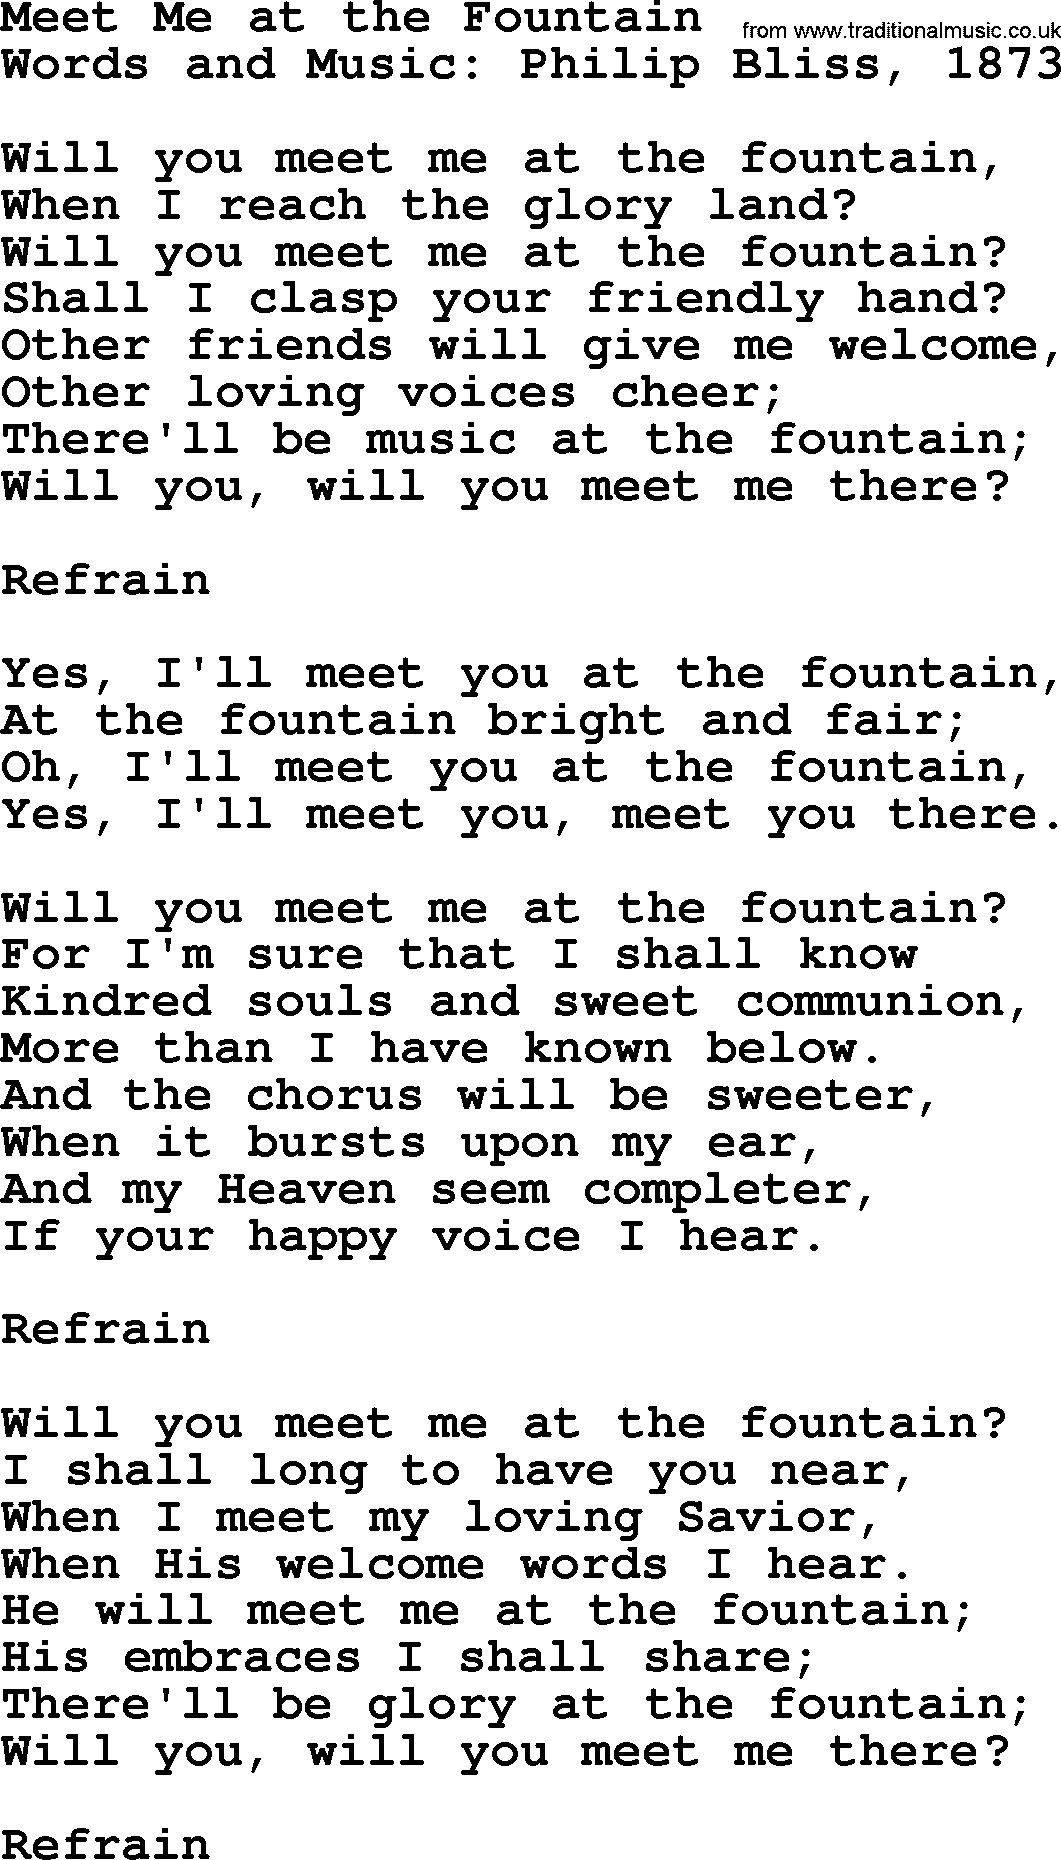 meet me at the fountain lyrics